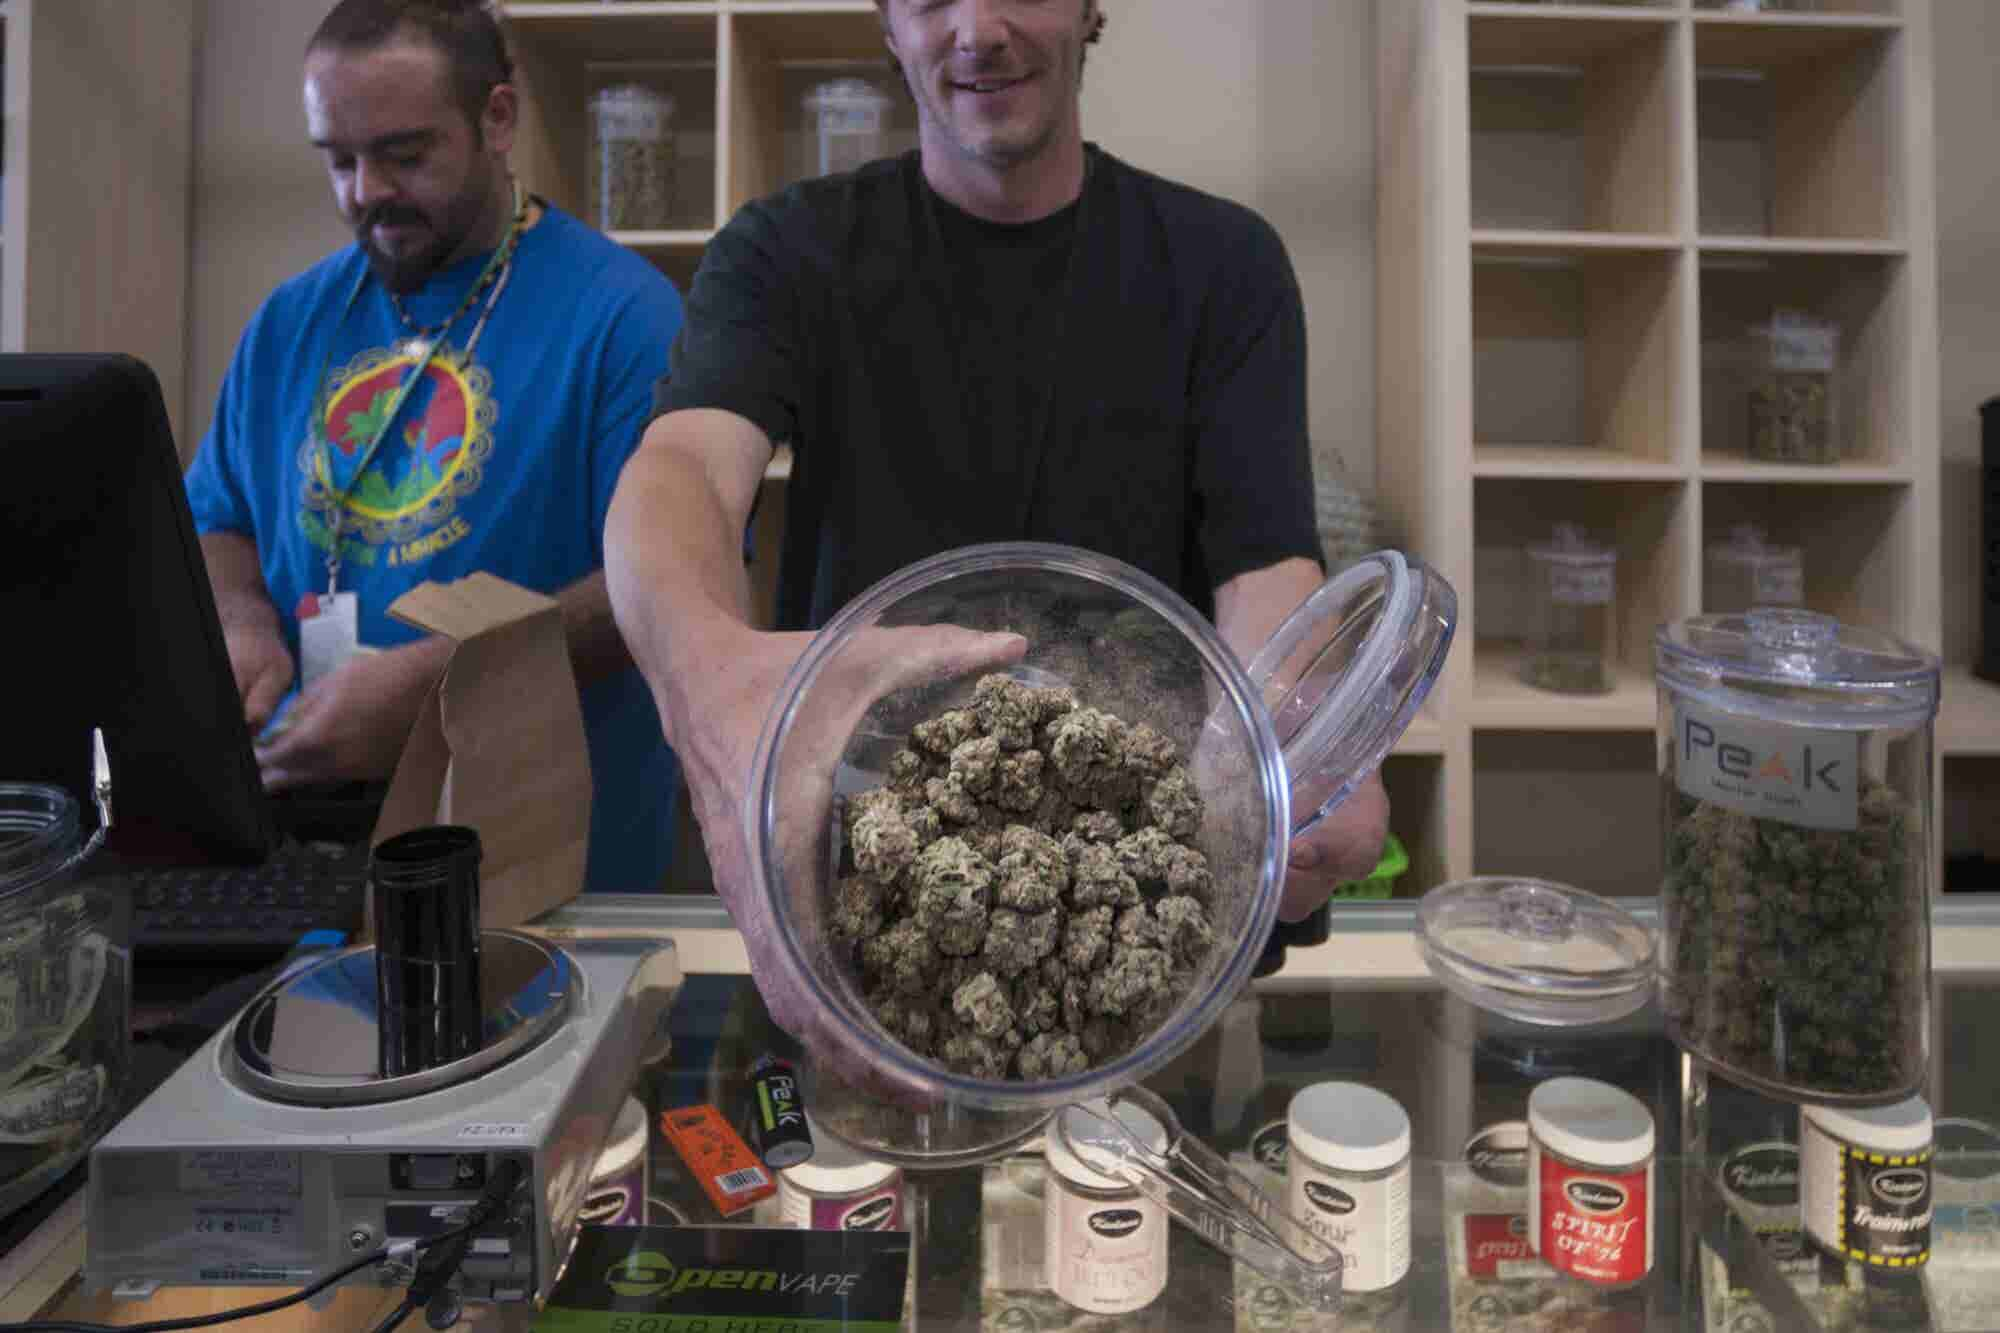 Report: Booming Cannabis Industry to More Than Double Employment Within a Year